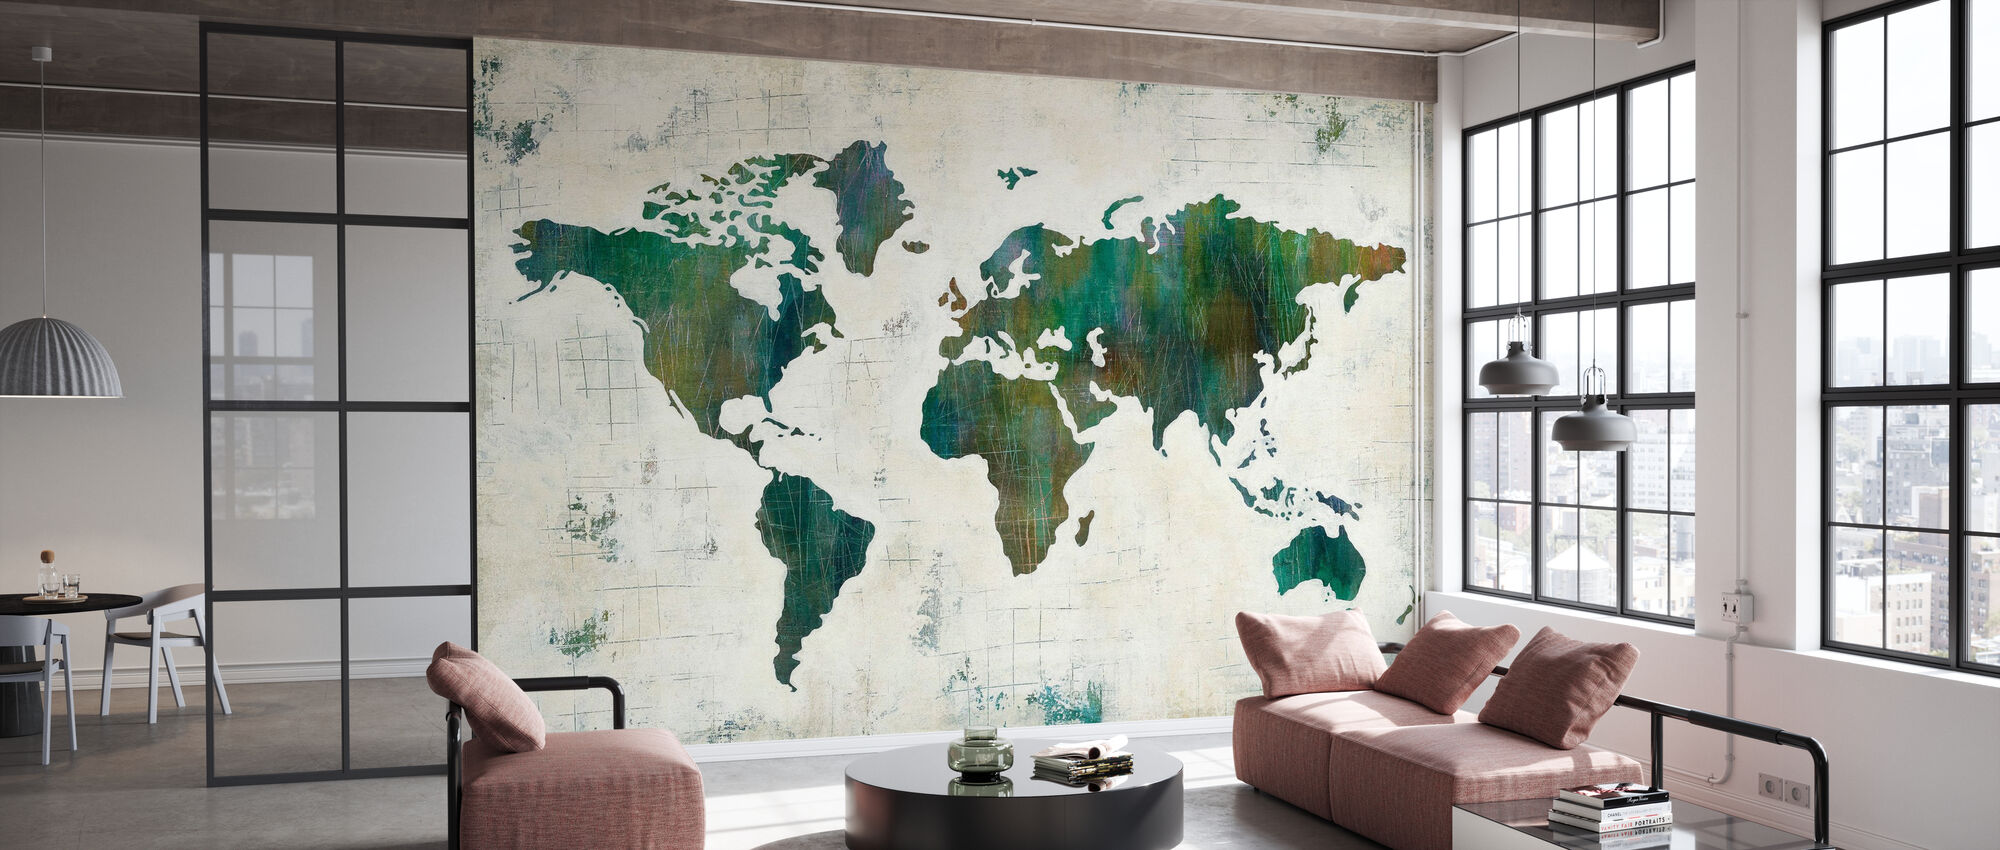 Discover the World - Wallpaper - Office